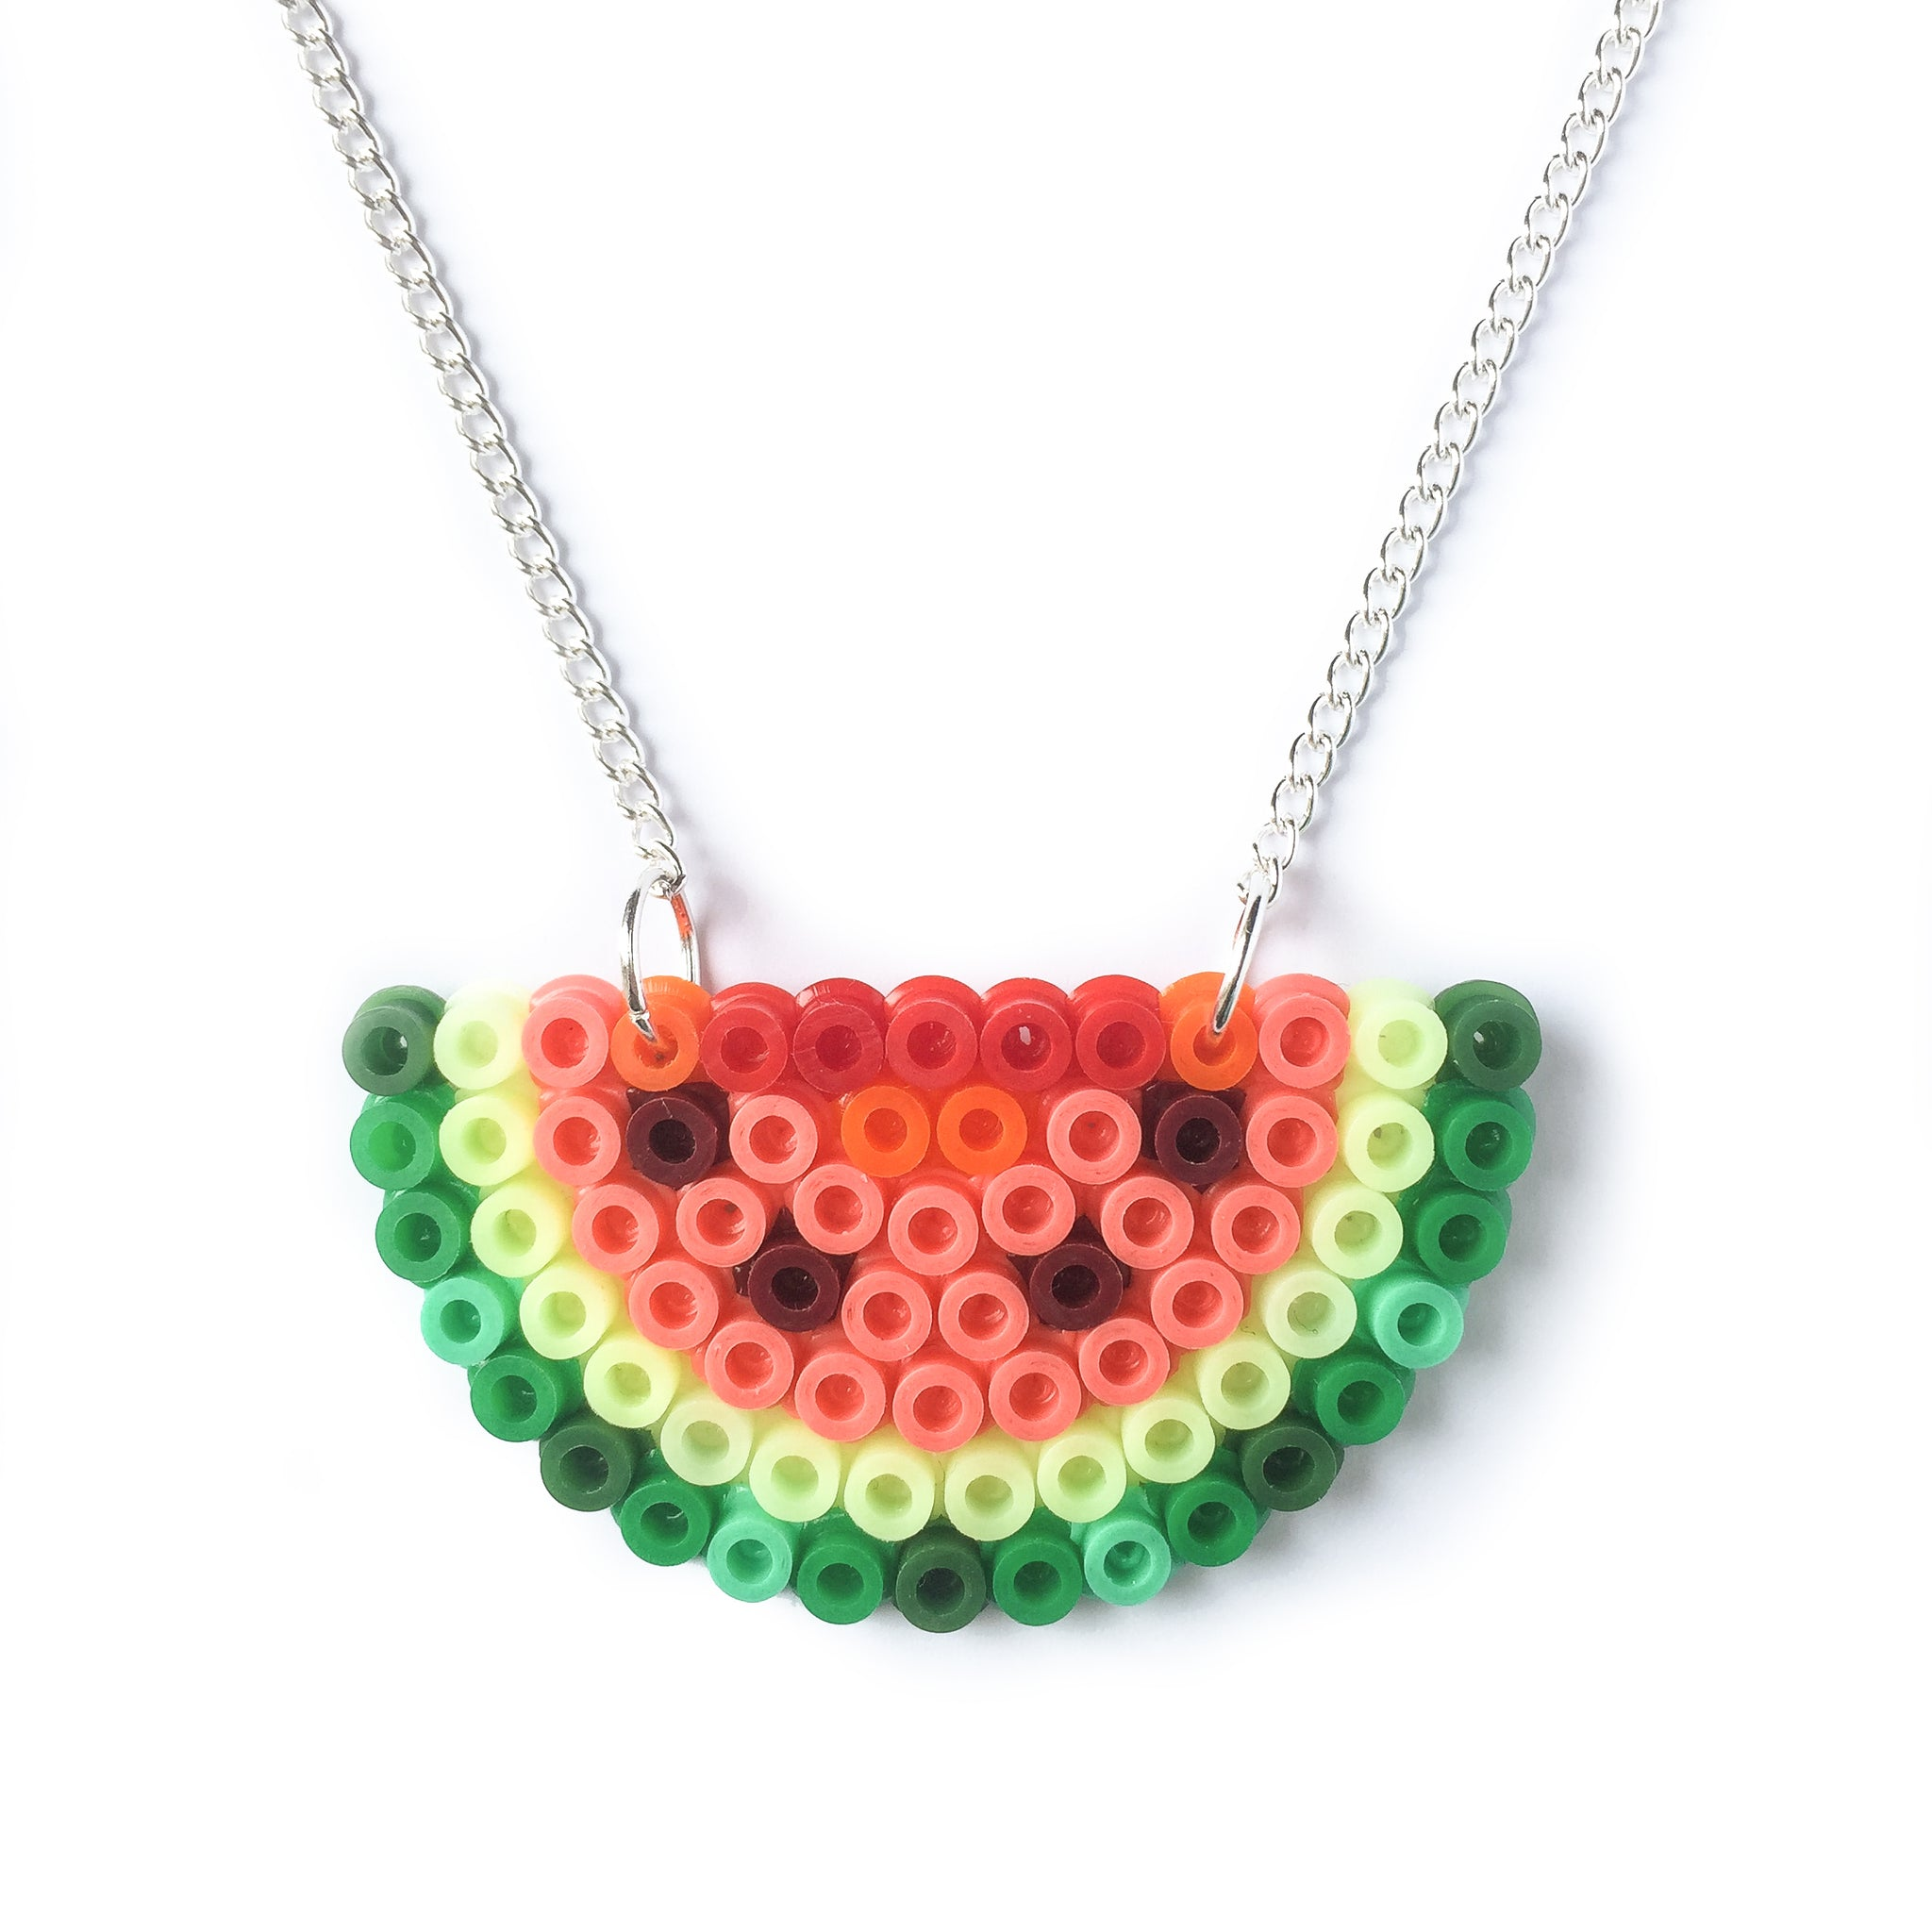 Watermelon Pendant Necklace